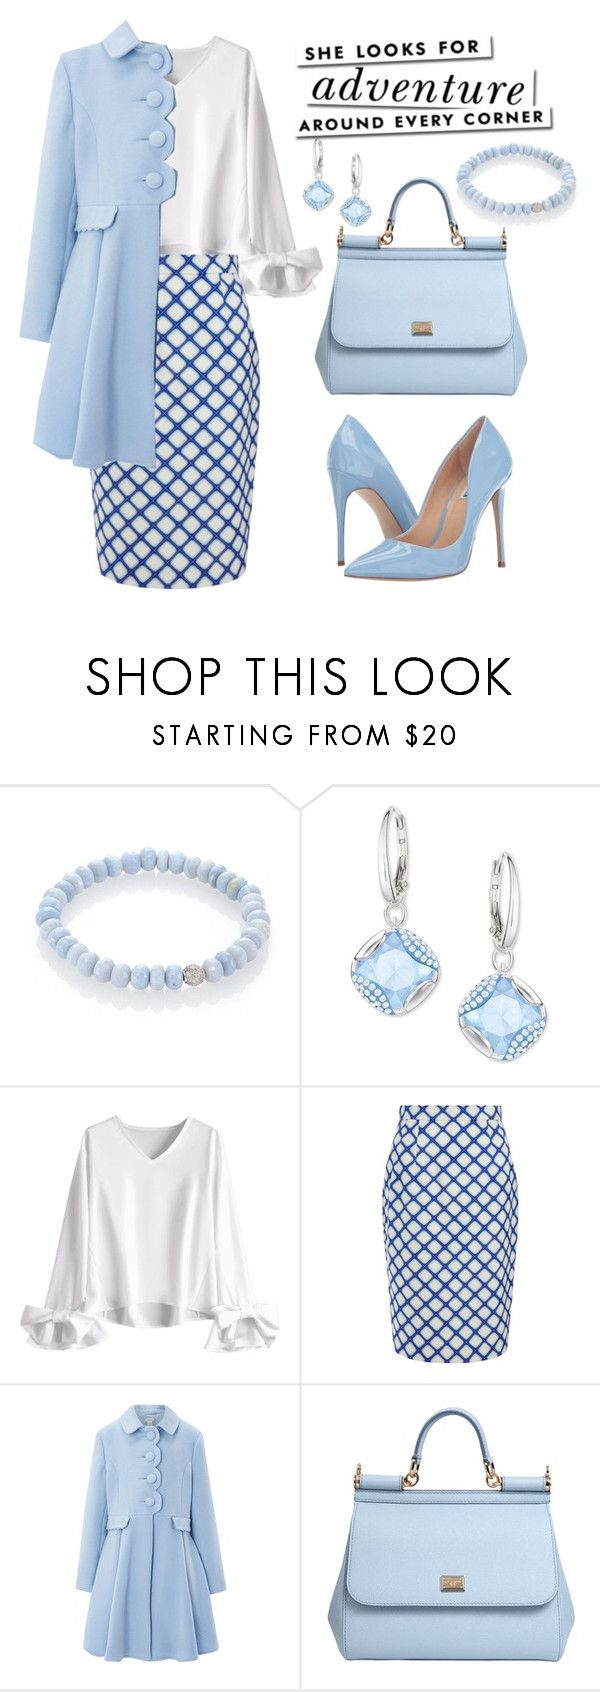 "I love the skirt, would put navey with it not the light blue.""Untitled #218"" by tinatin97 ❤ liked on Polyvore featuring Sydney Evan, Swarovski, Jonathan Saunders, Monsoon, Kate Spade, Dolce&Gabbana and Steve Madden"